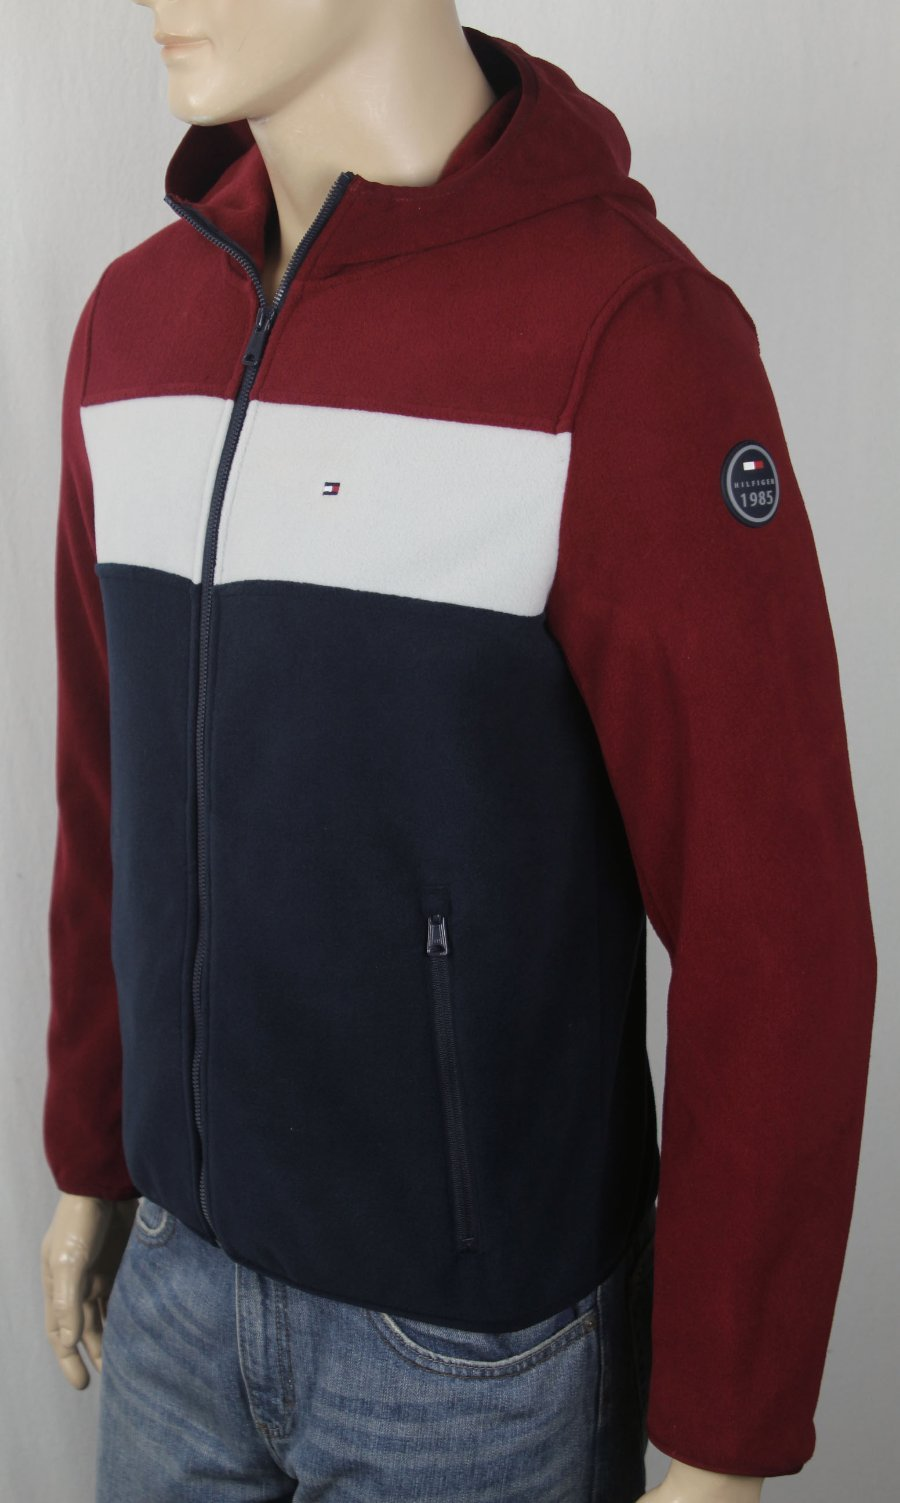 NWT Blue Tommy Hilfiger Outerwear Full Zip Up Jacket Adult Men/'s Size Large